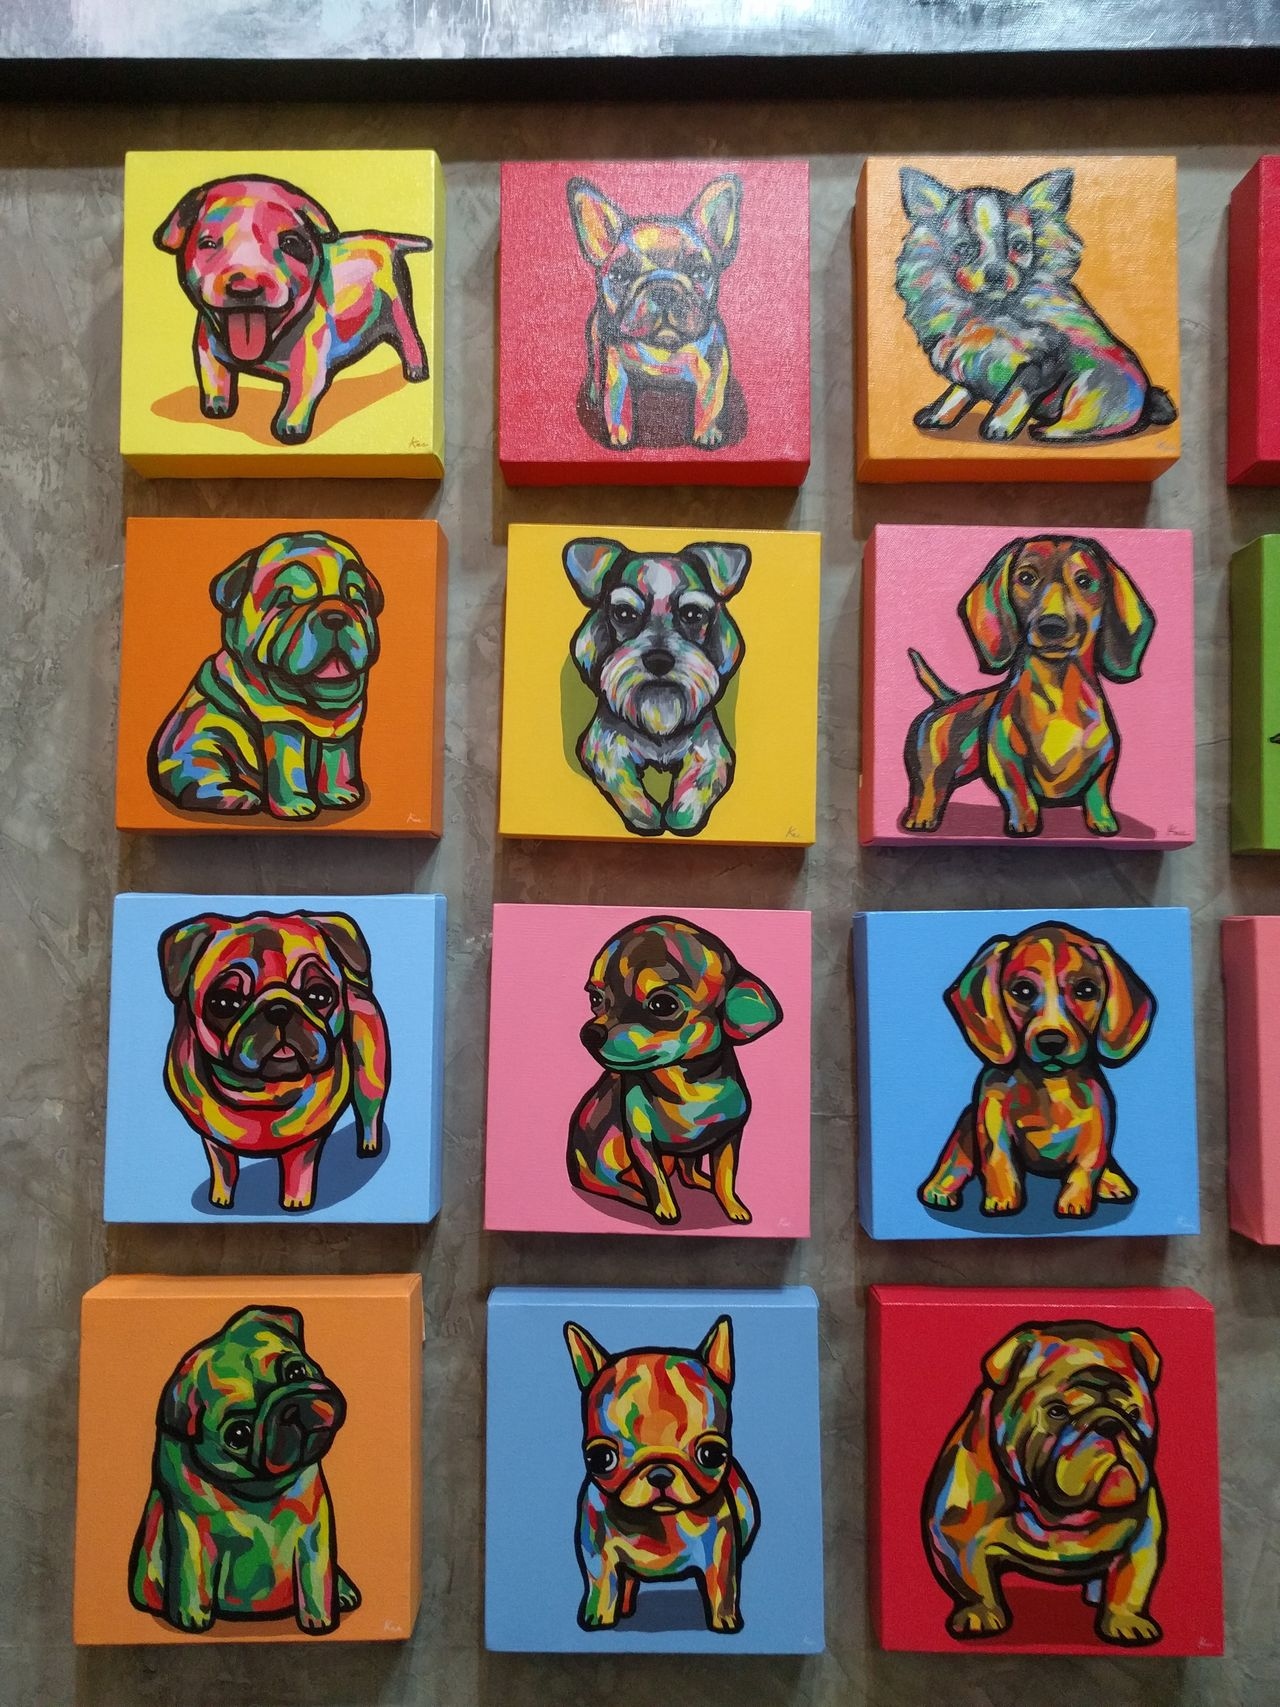 Paintings in the market Art ArtWork Canvas Color Culture Cultures Dog Drawing Indoors  Market Multi Colored Painting Puppies Tiles Wall